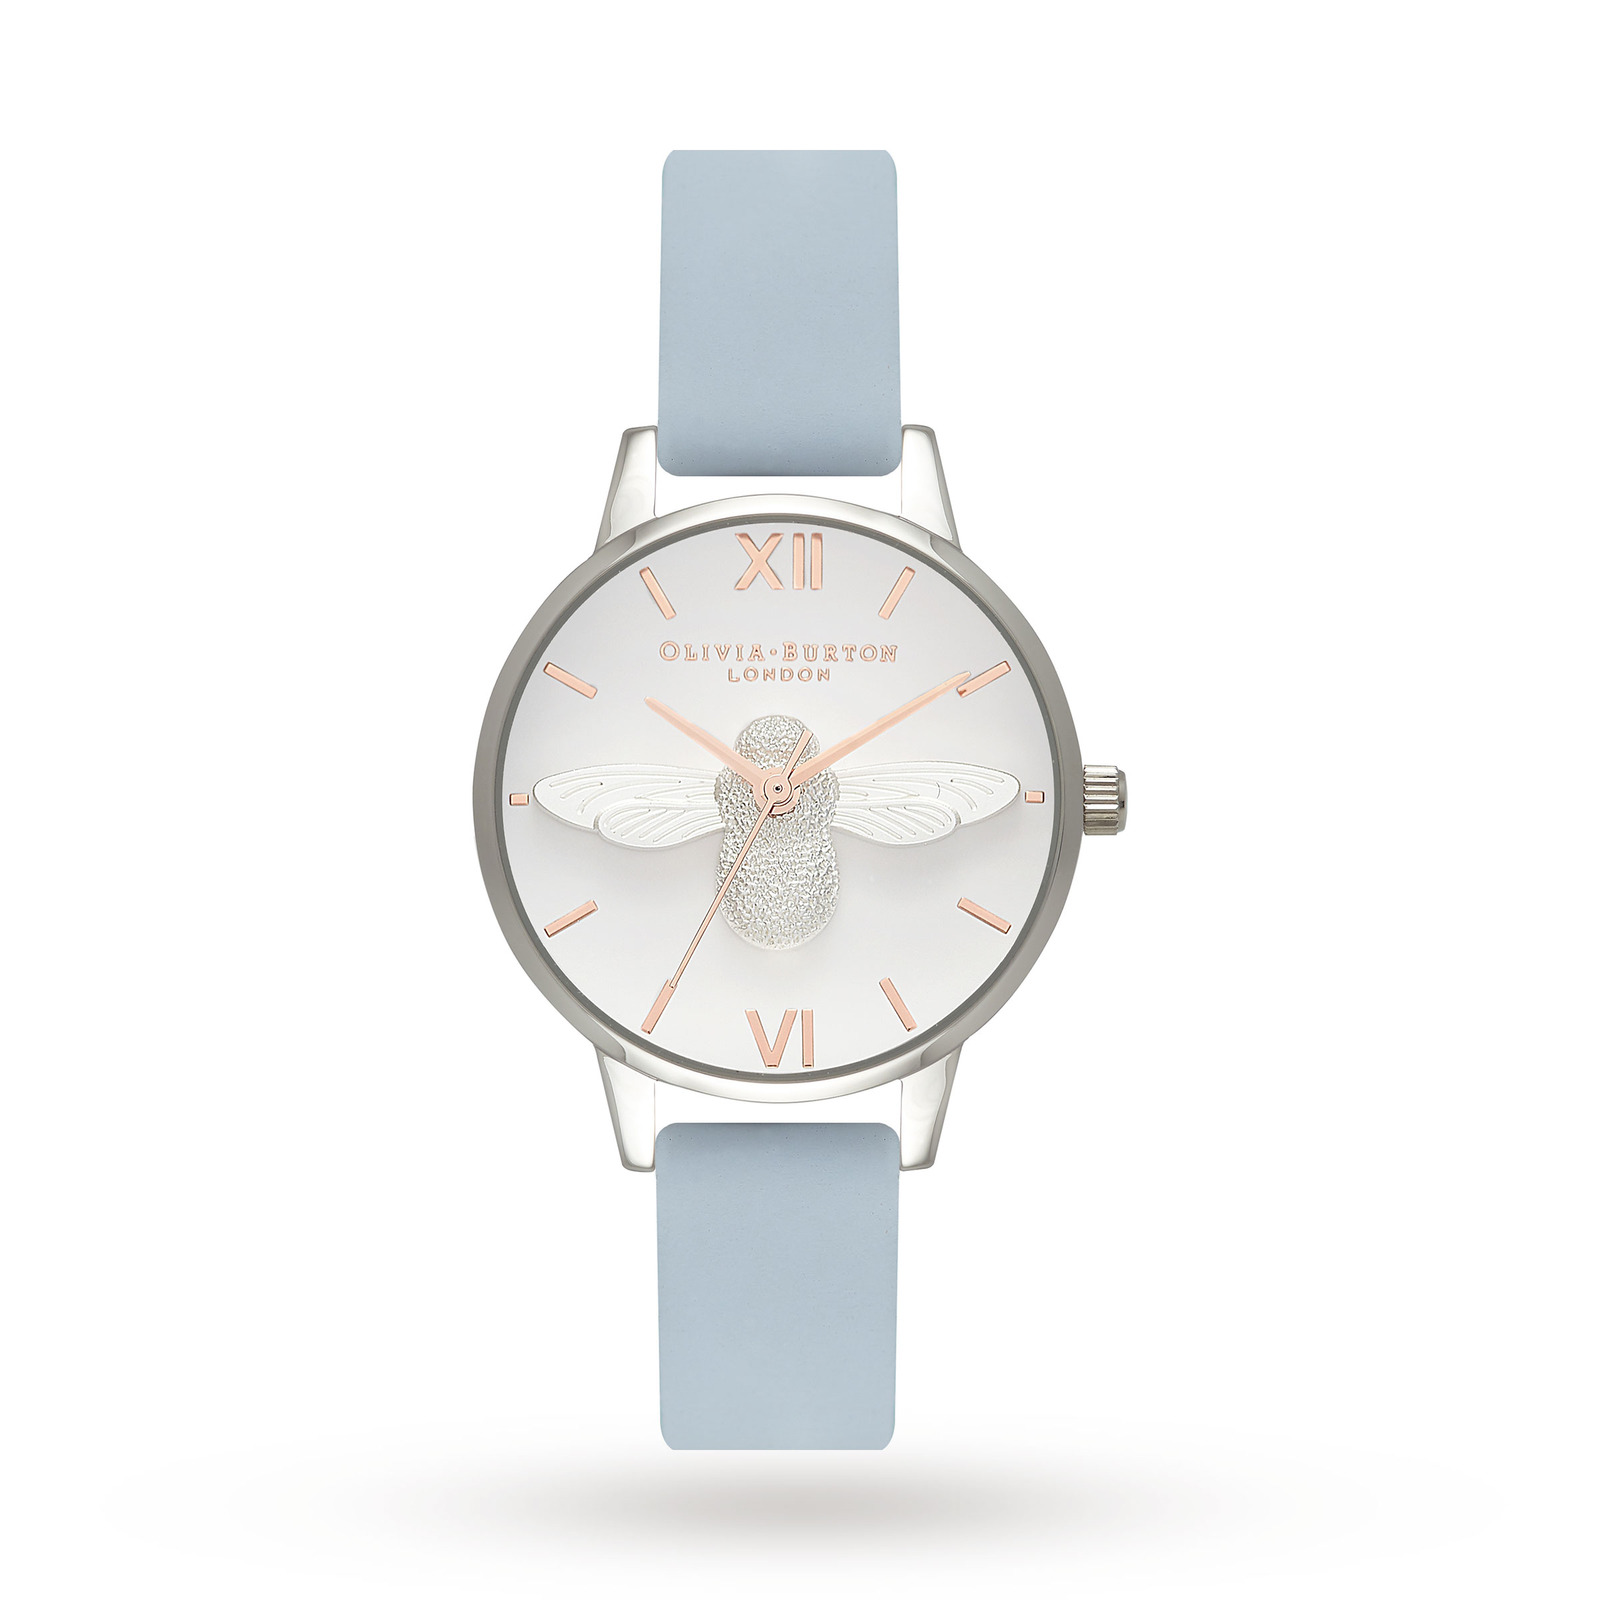 Ladies Olivia Burton Moulded Bee Chalk Blue & Silver Watch OB16AM125